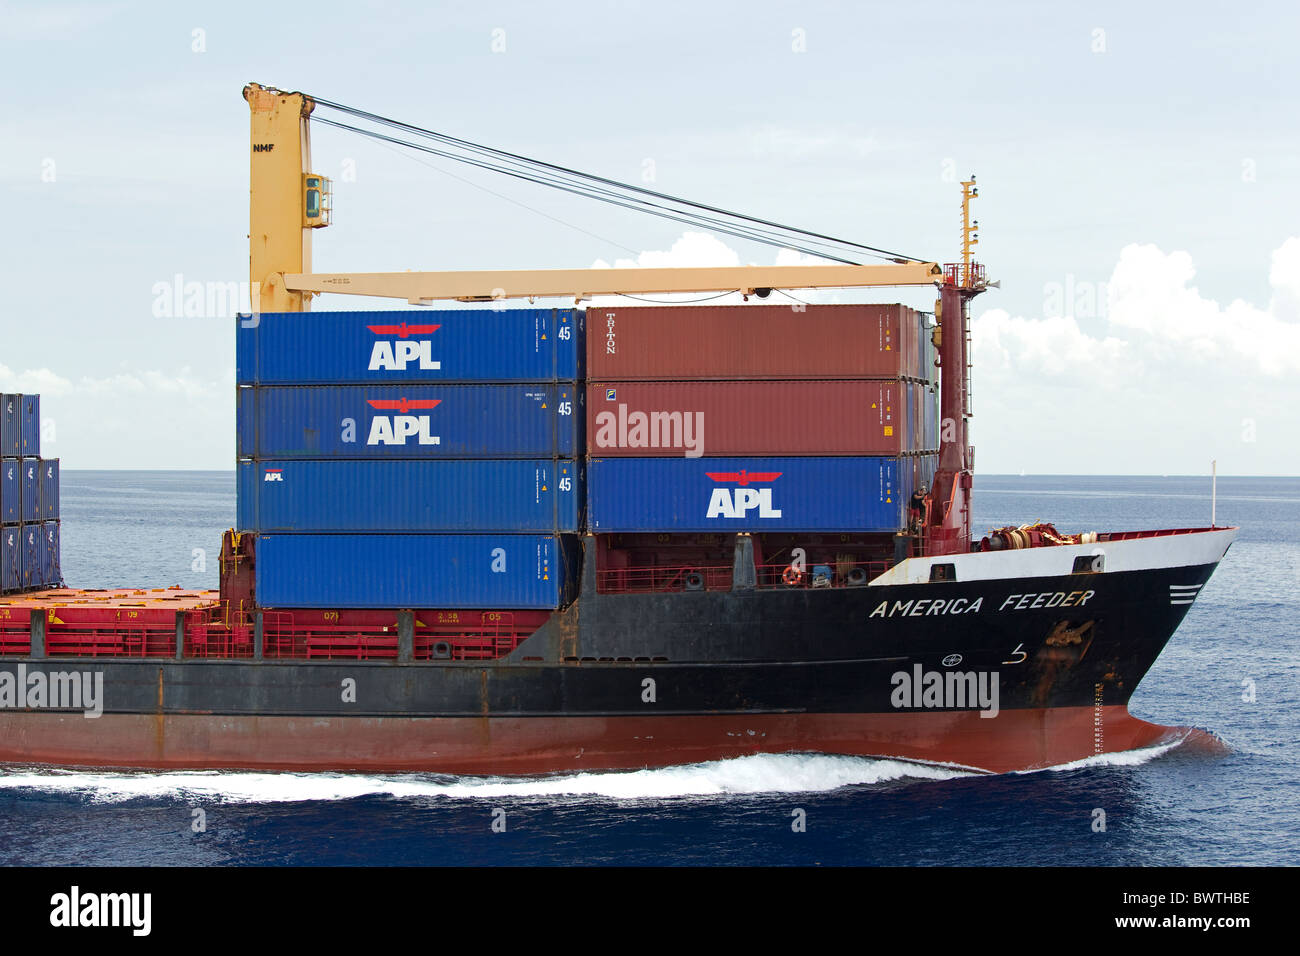 Cargo ship at sea with shipping containers - Stock Image